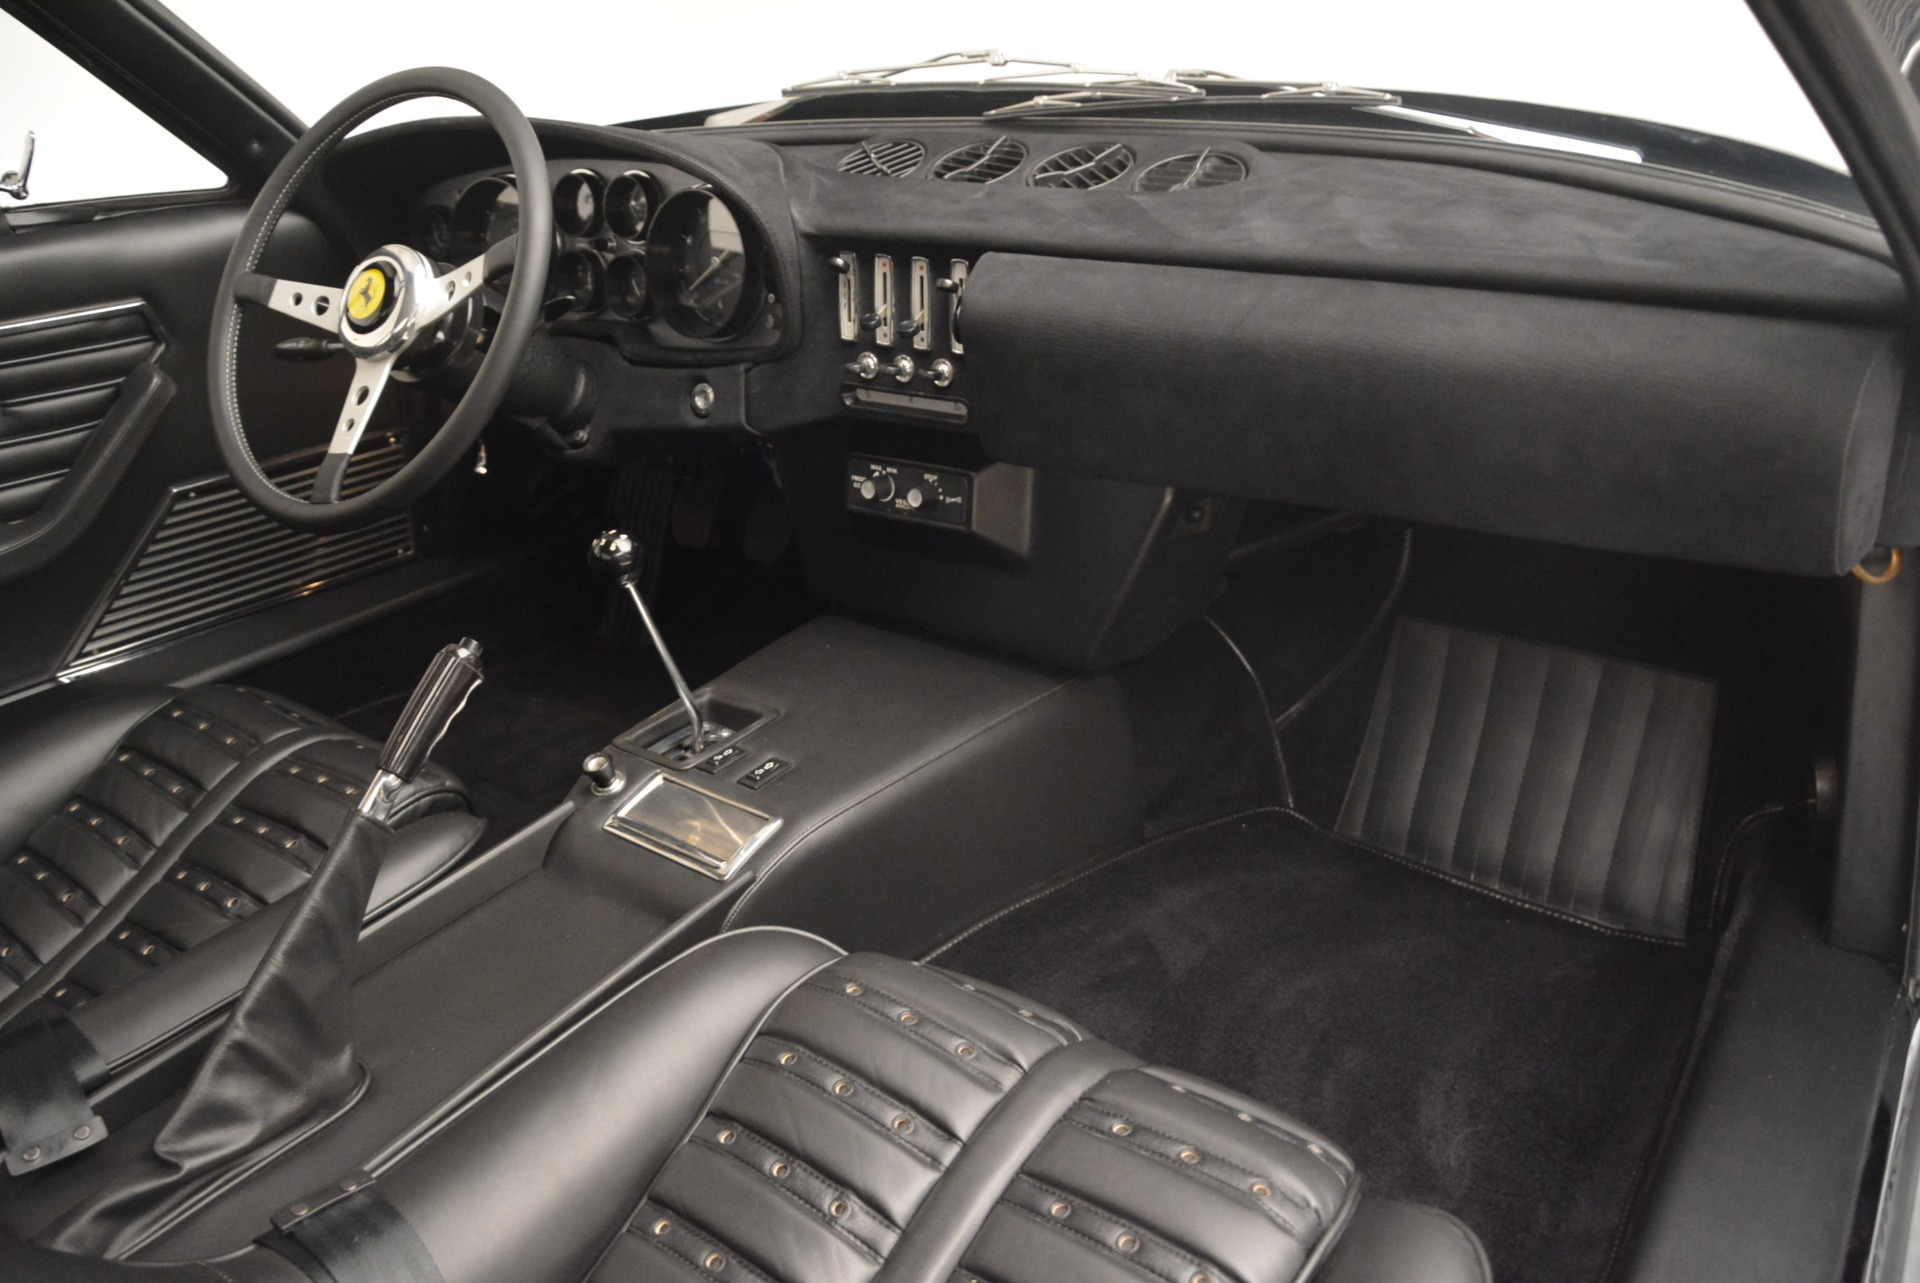 Used 1971 Ferrari 365 GTB/4 Daytona For Sale In Greenwich, CT 2146_p13